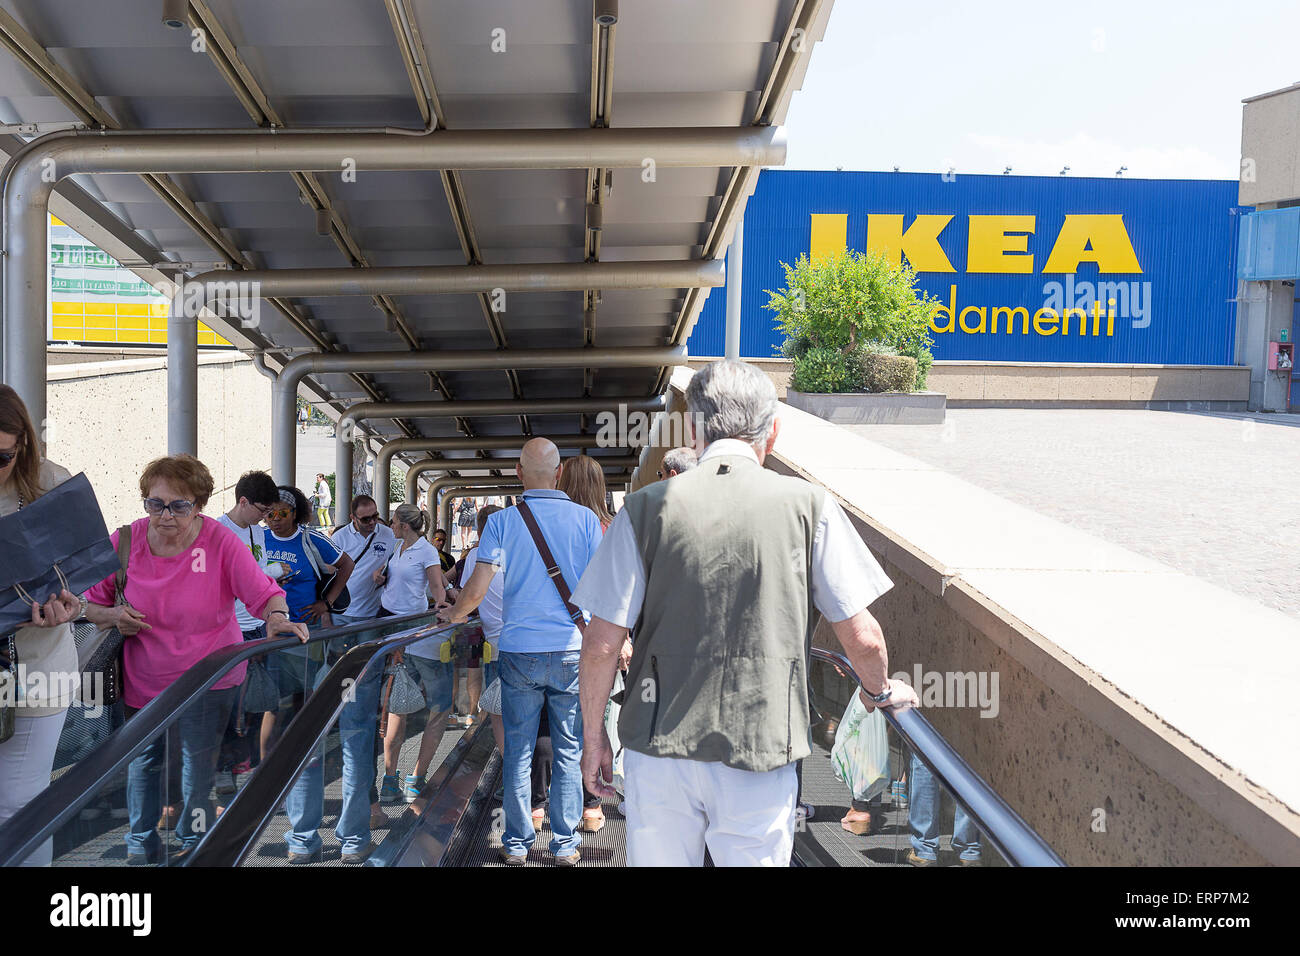 Ikea Roma Rome Italy 06th June 2015 Hundreds Of Workers Of The Stock